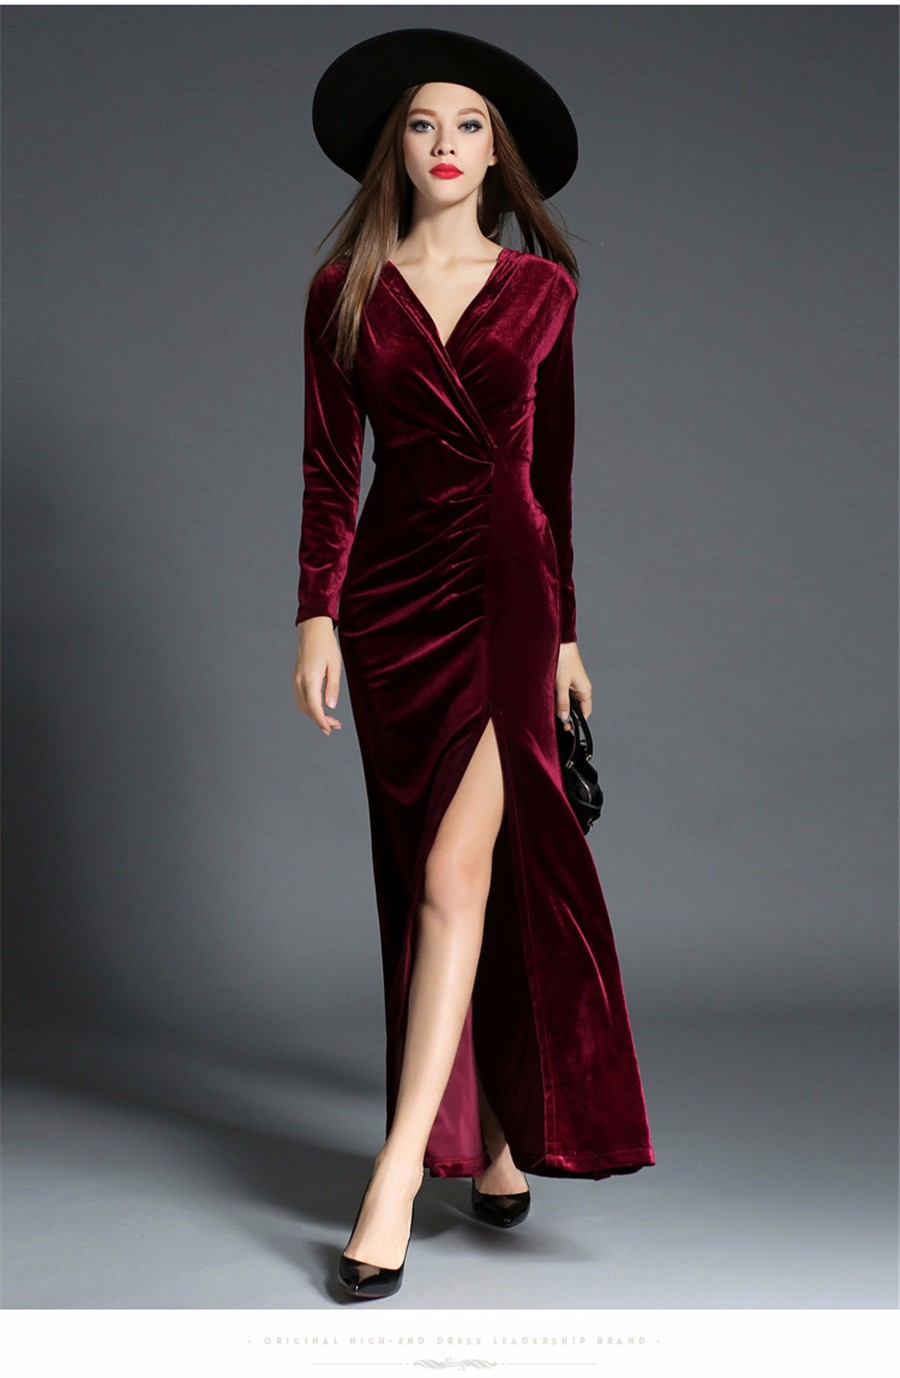 17 Autumn Winter Evening Party Dresses Red Velvet Dress Women Sexy High Split Long Maxi Dresses Christmas Runway Vestido Longo 12